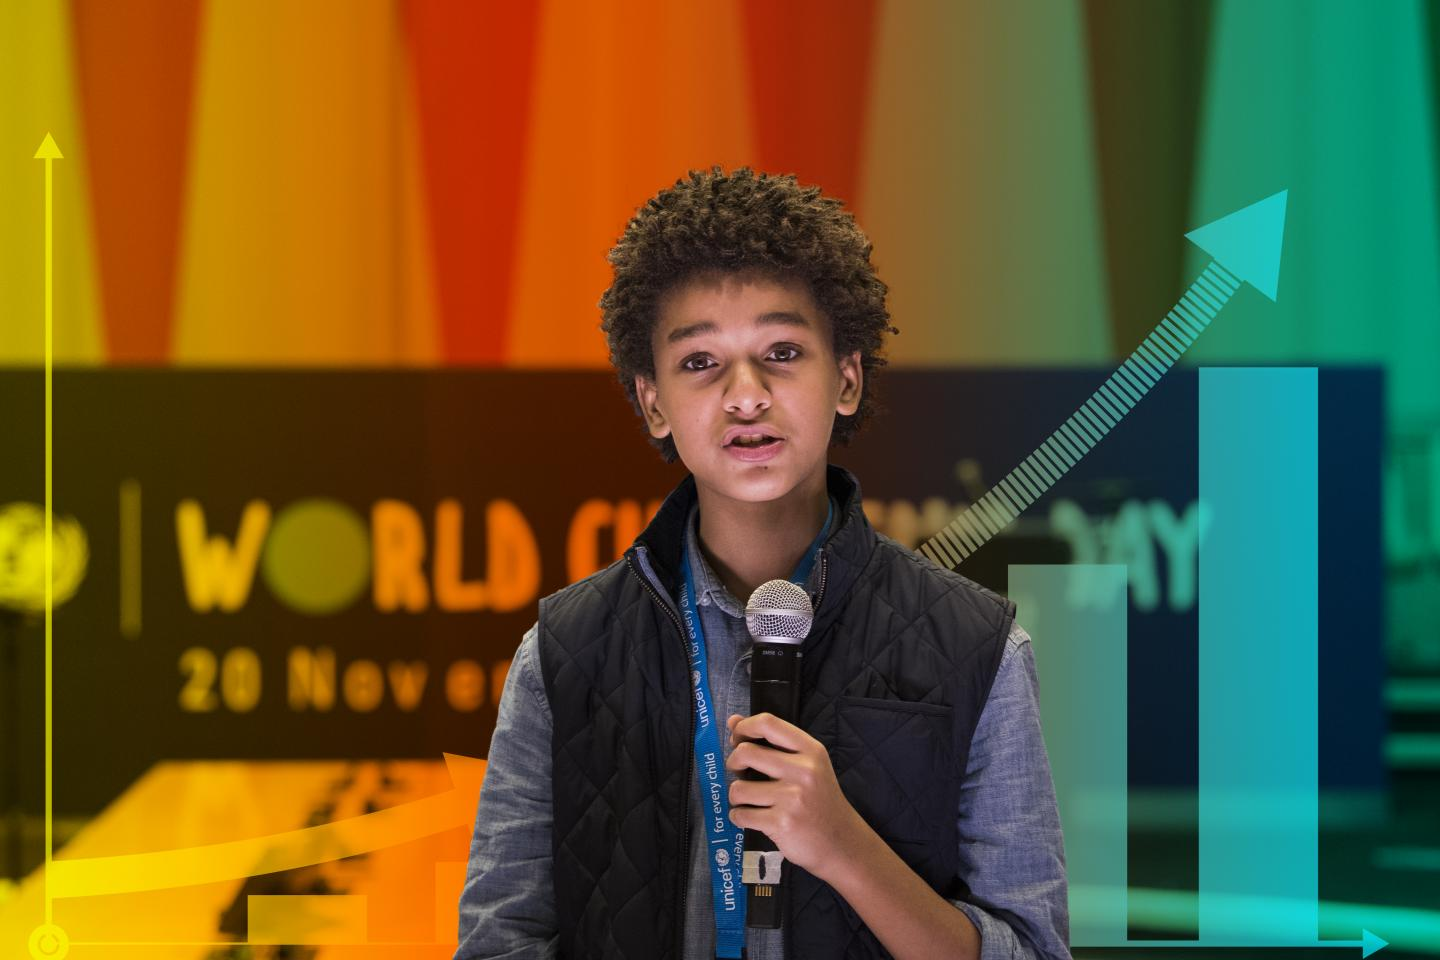 Jaden Michael, a young actor, speaks into a microphone at an event for World Children's Day.